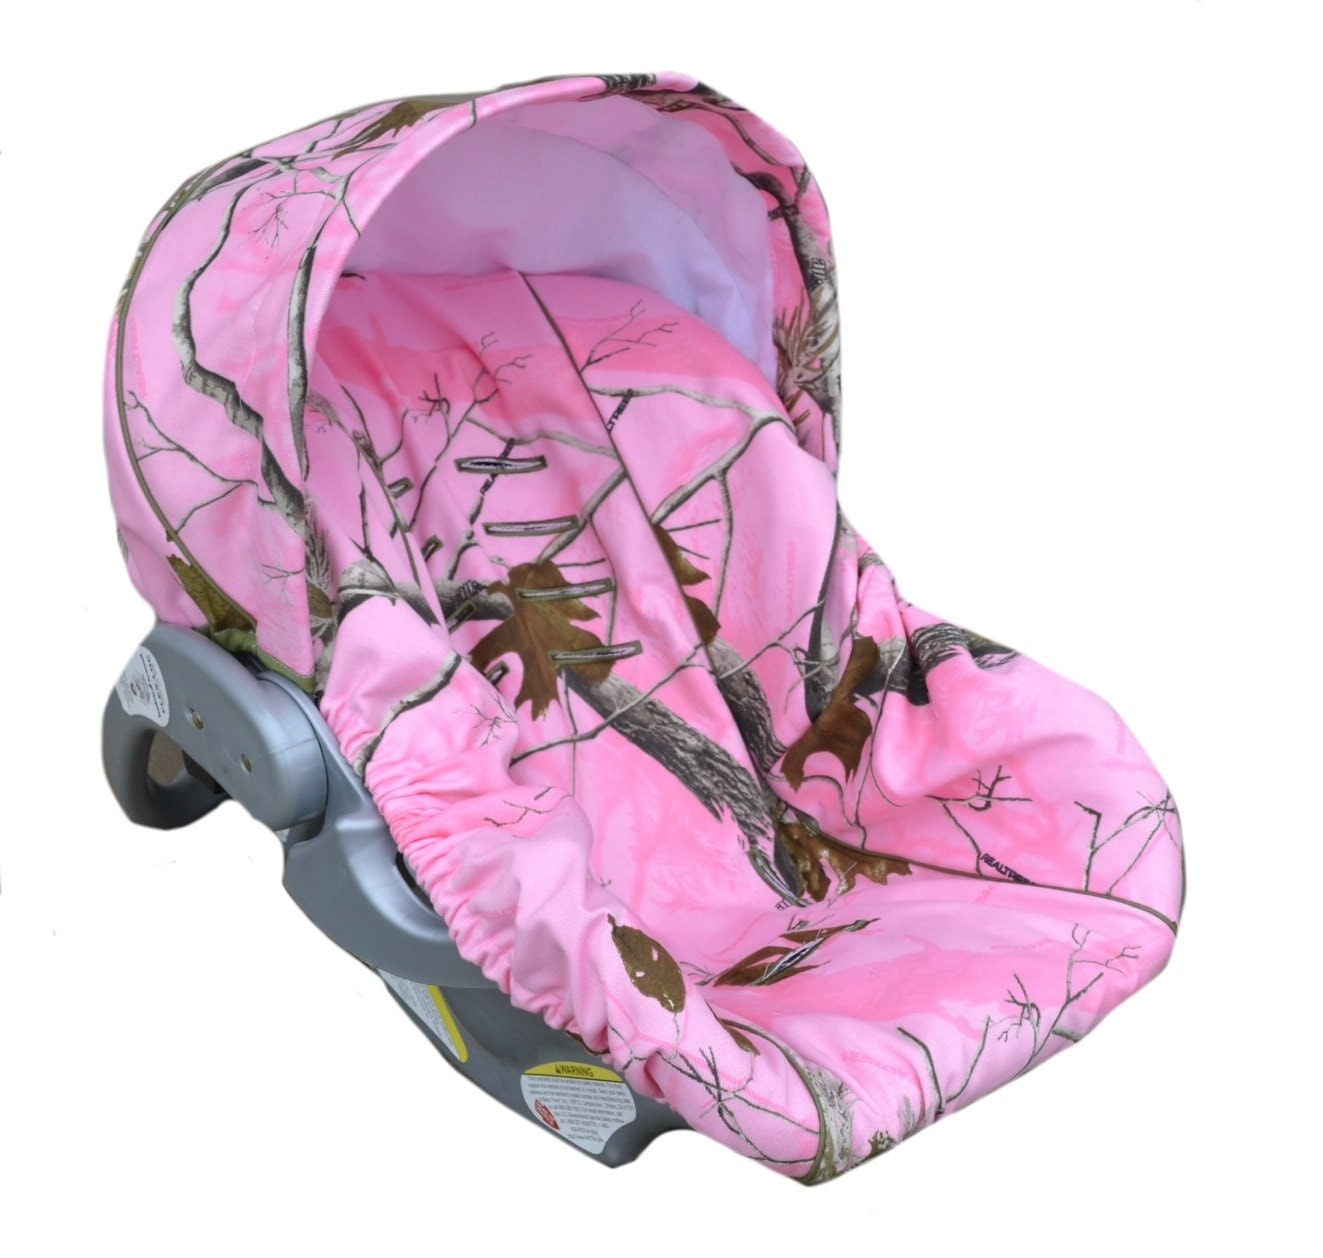 Baby Car Sear Cover Infant Car Seat Cover Slip Cover Pink